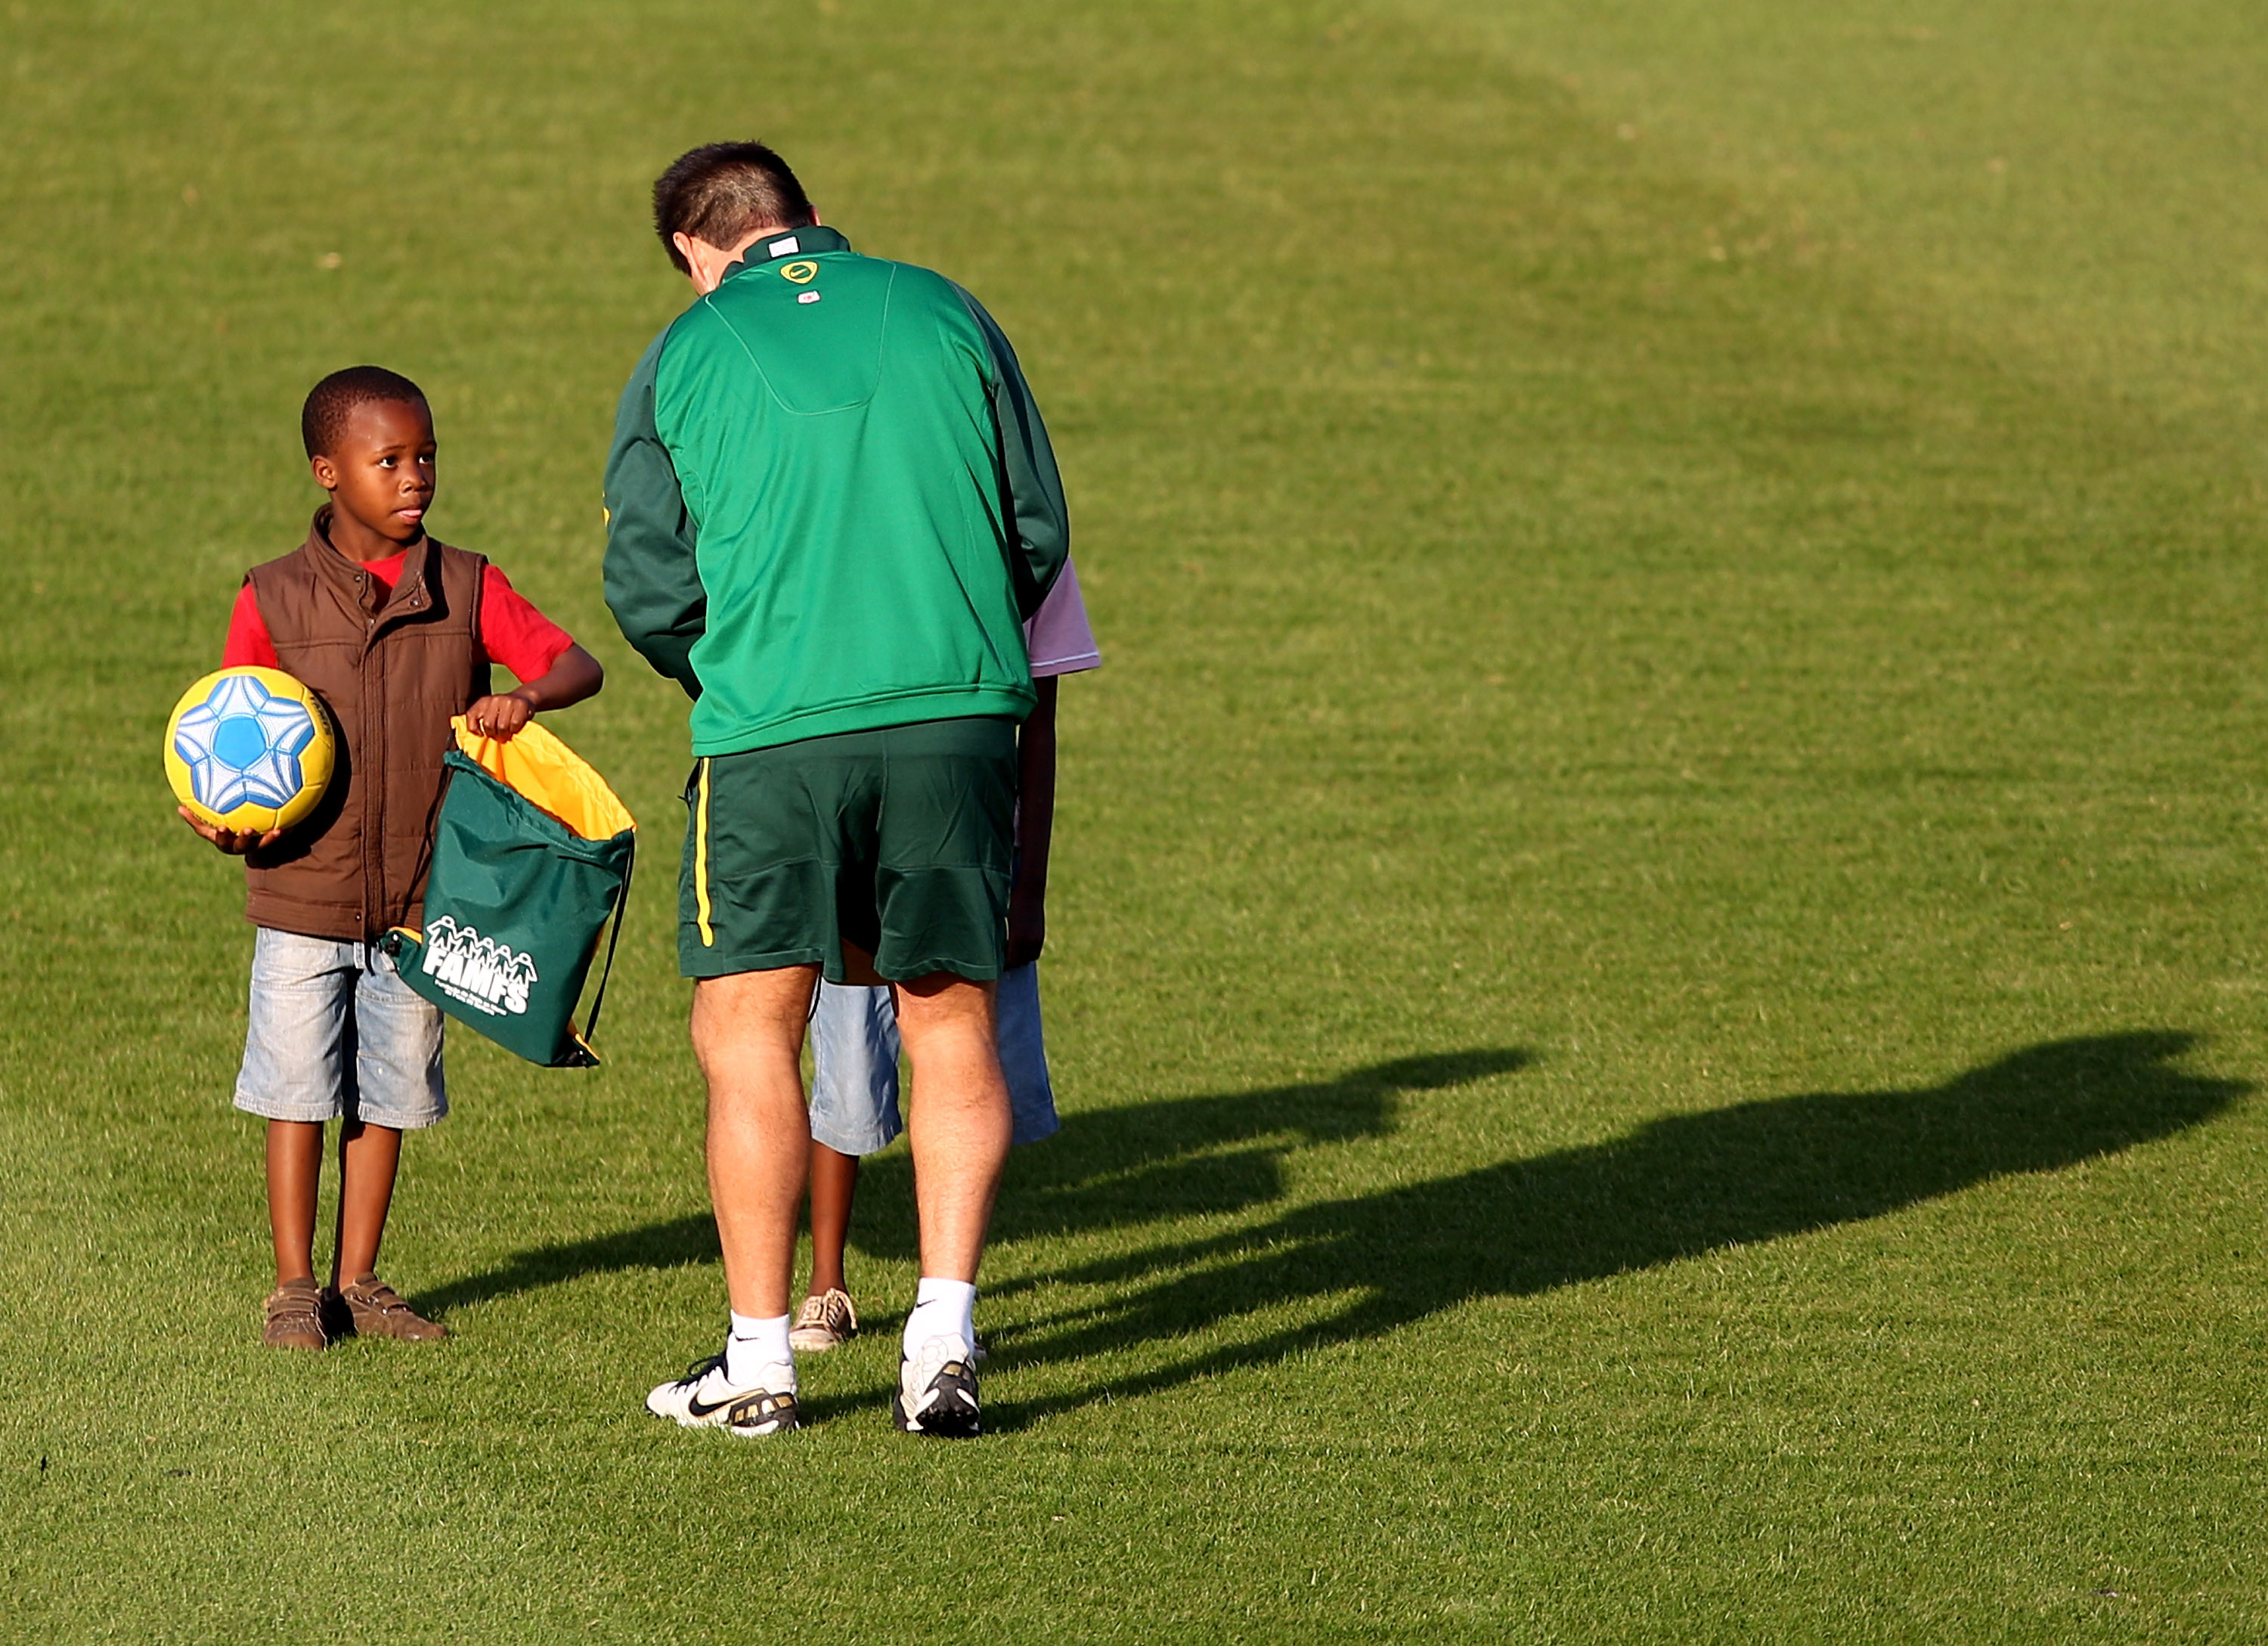 JOHANNESBURG, SOUTH AFRICA - JUNE 03: Head Coach Dunga gives presents to local children during the Brazil Training session at Dobsonville Stadium in Soweto on June 3, 2010 in Johannesburg, South Africa. The Brazil national team are in South Africa to cont